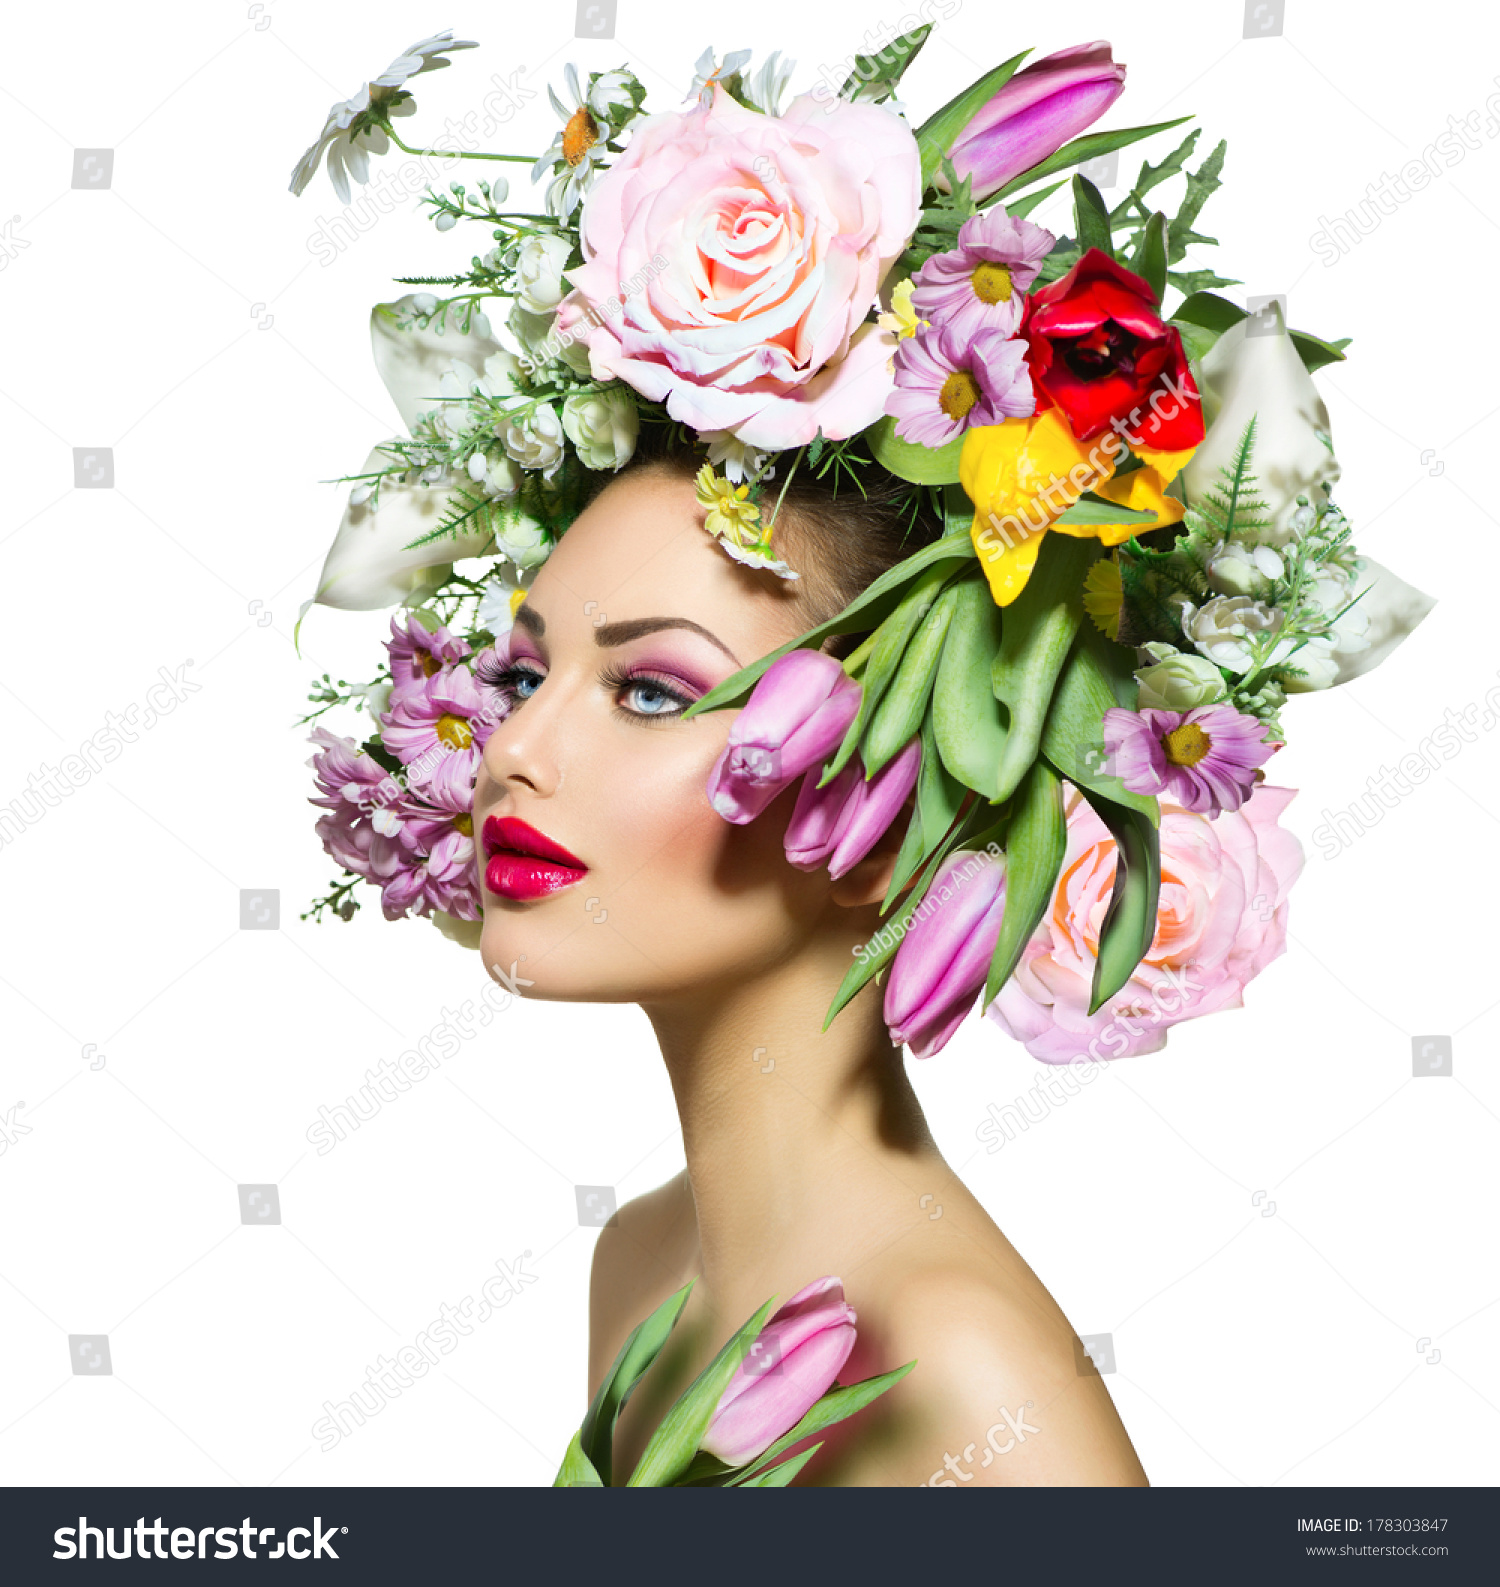 Beauty spring girl flowers hair style stock photo 178303847 beauty spring girl with flowers hair style beautiful model woman with blooming flowers on her dhlflorist Gallery